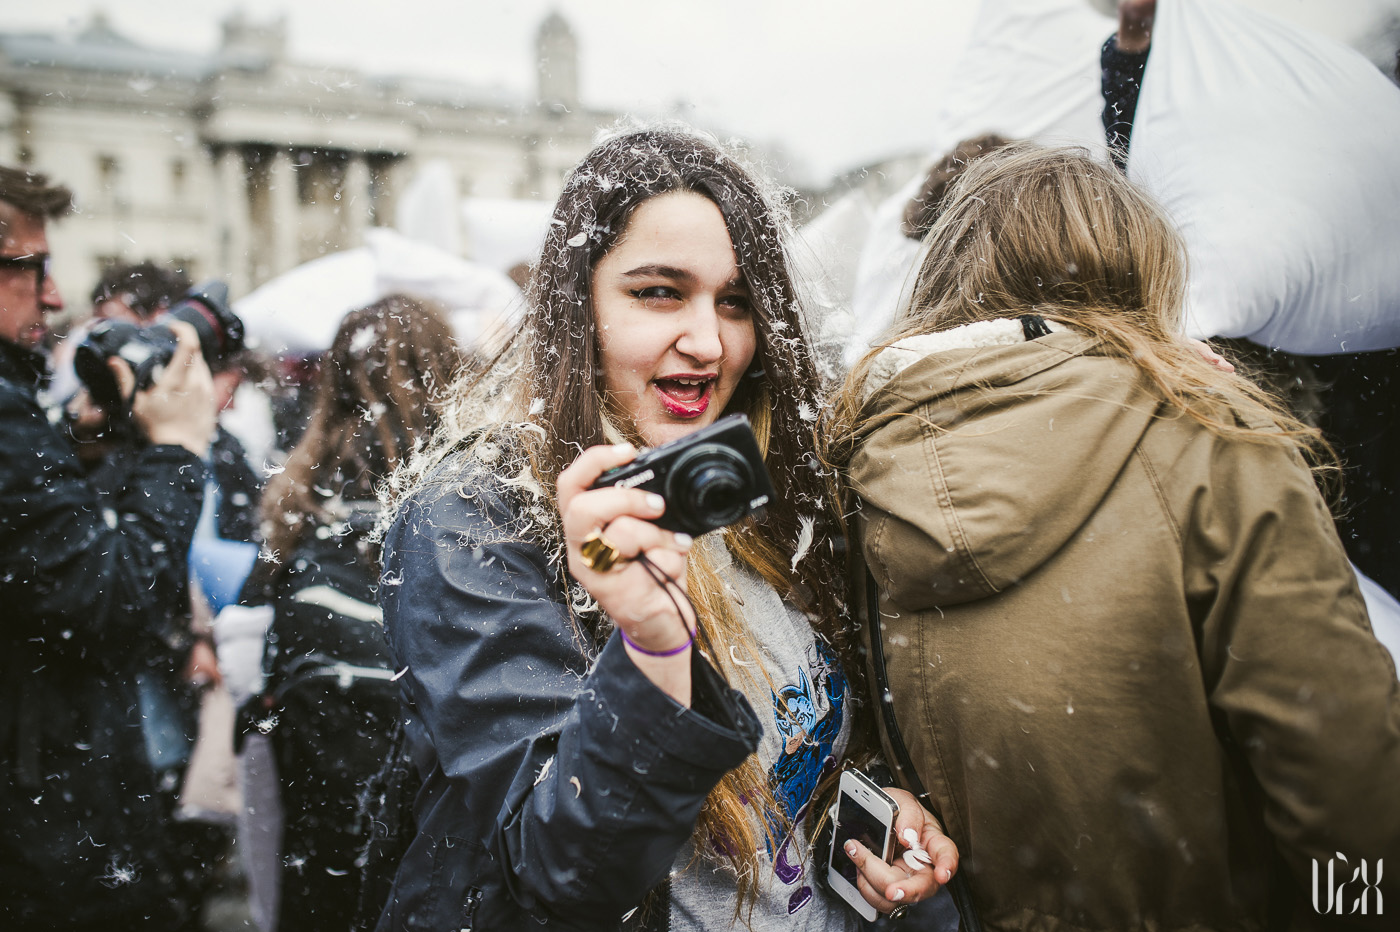 International Pillow Fight Day In London 2015 Street Photography Pagalviu Musis 11